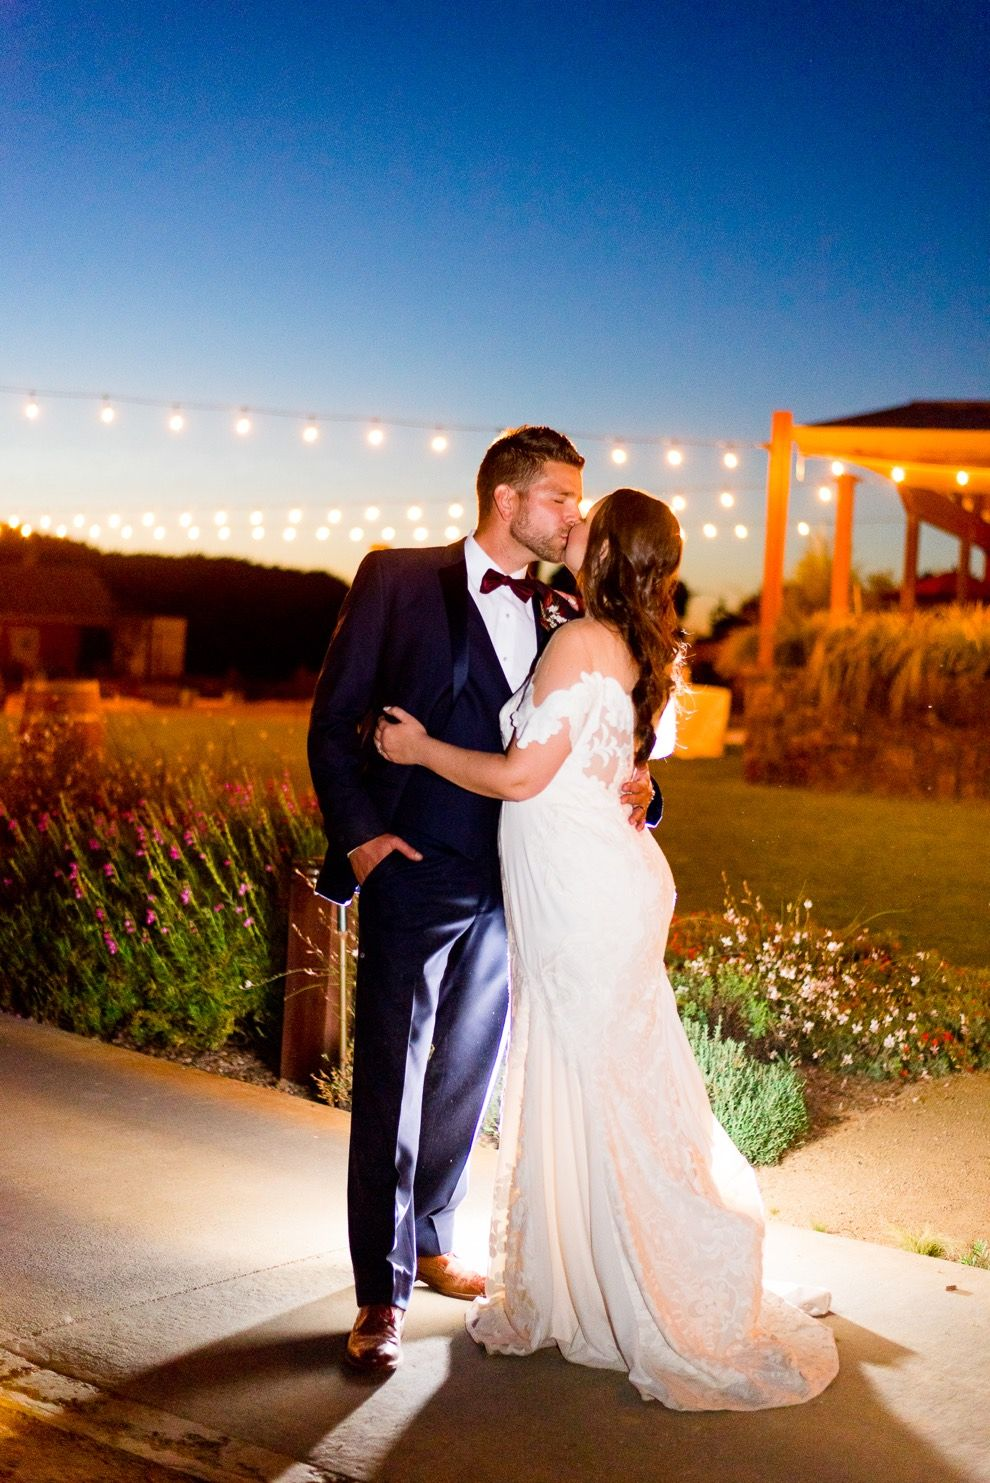 young married couple hugs and kisses under the blue night sky and string lights at Pennyroyal Farm wedding